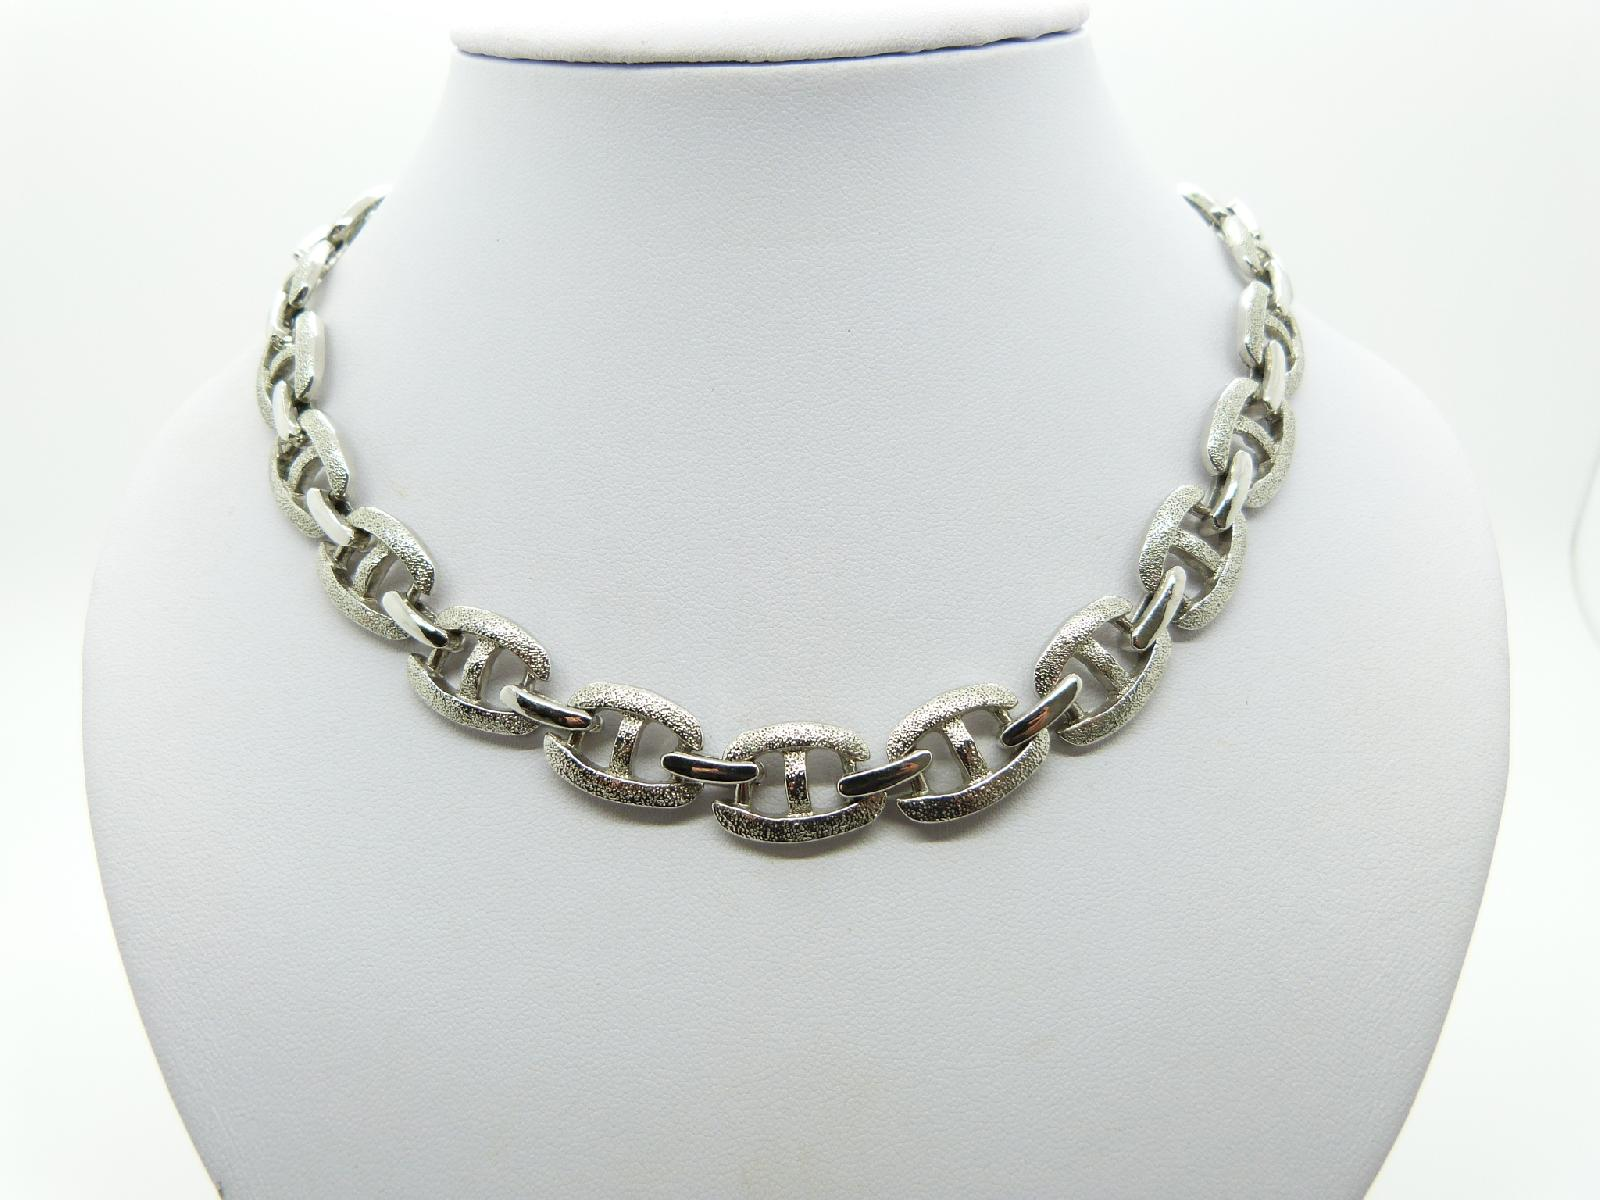 £24.00 - Vintage 60s QualityTextured Fancy Link Modernist Silvertone Necklace 45cms